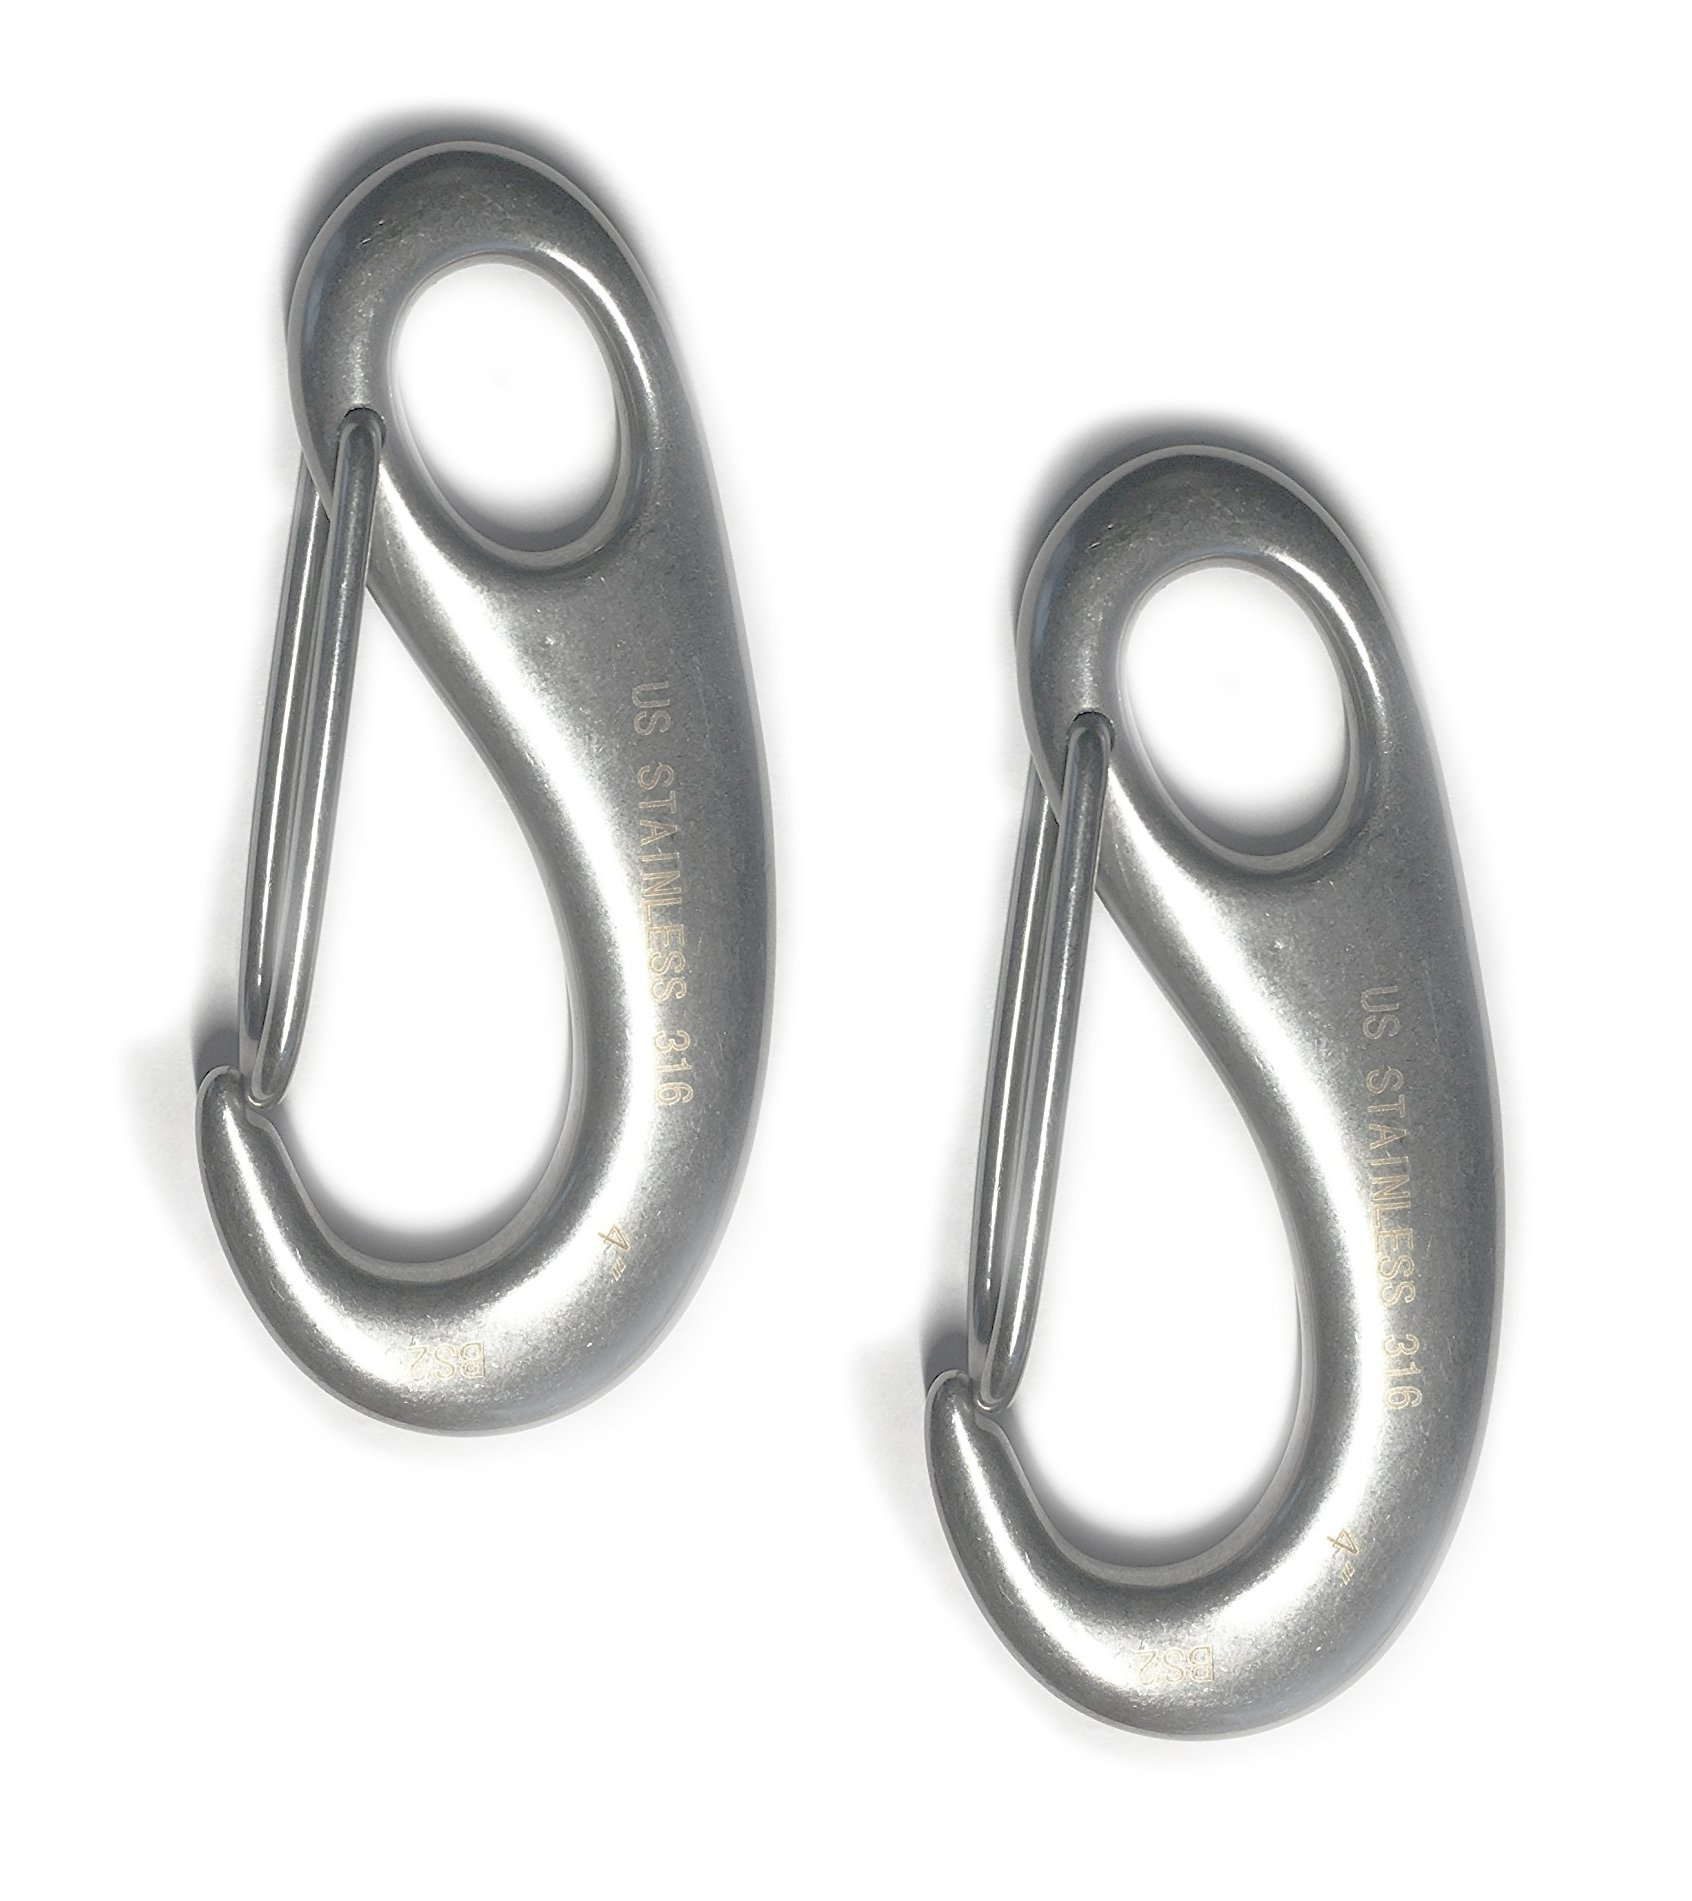 2 Pieces Stainless Steel 316 Spring Snap Lobster Claw 4'' Marine Grade